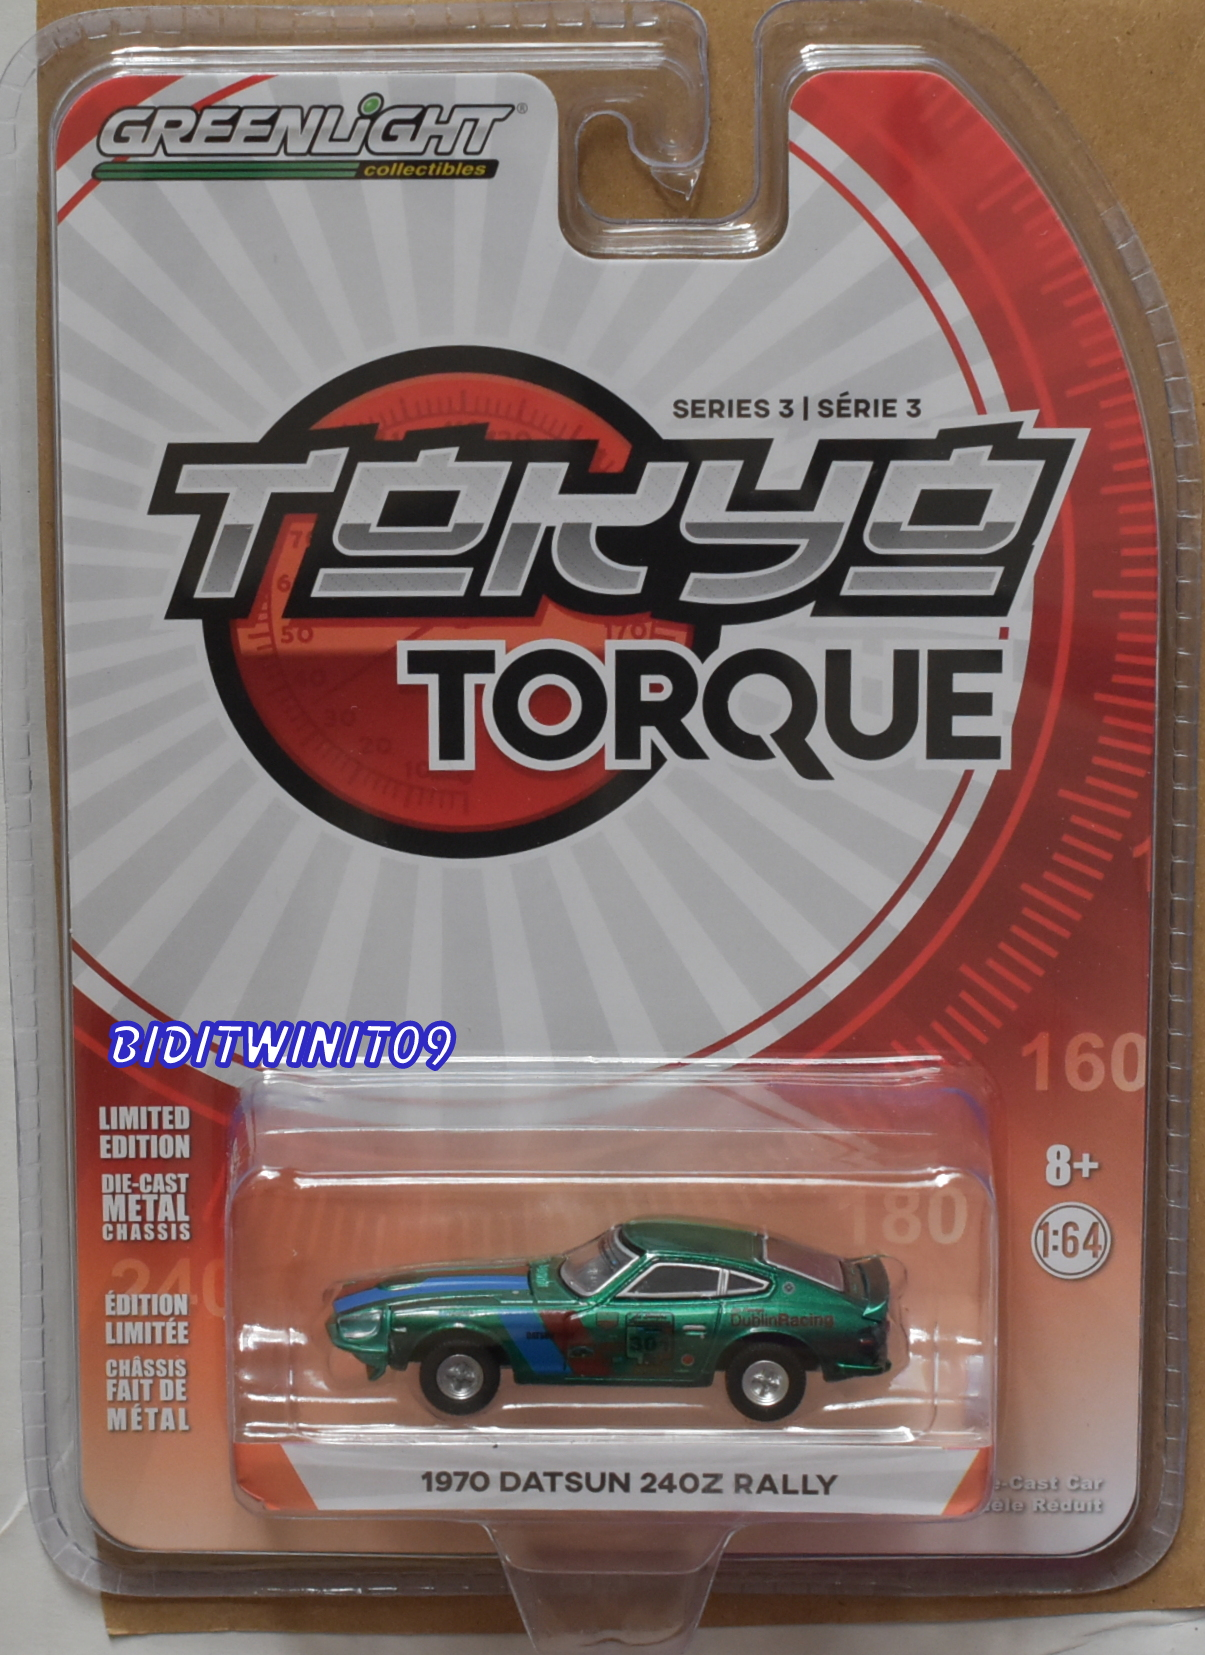 GREENLIGHT 2018 TOKYO TORQUE SERIES 3 1970 DATSUN 240Z RALLY GREEN MACHINE E+